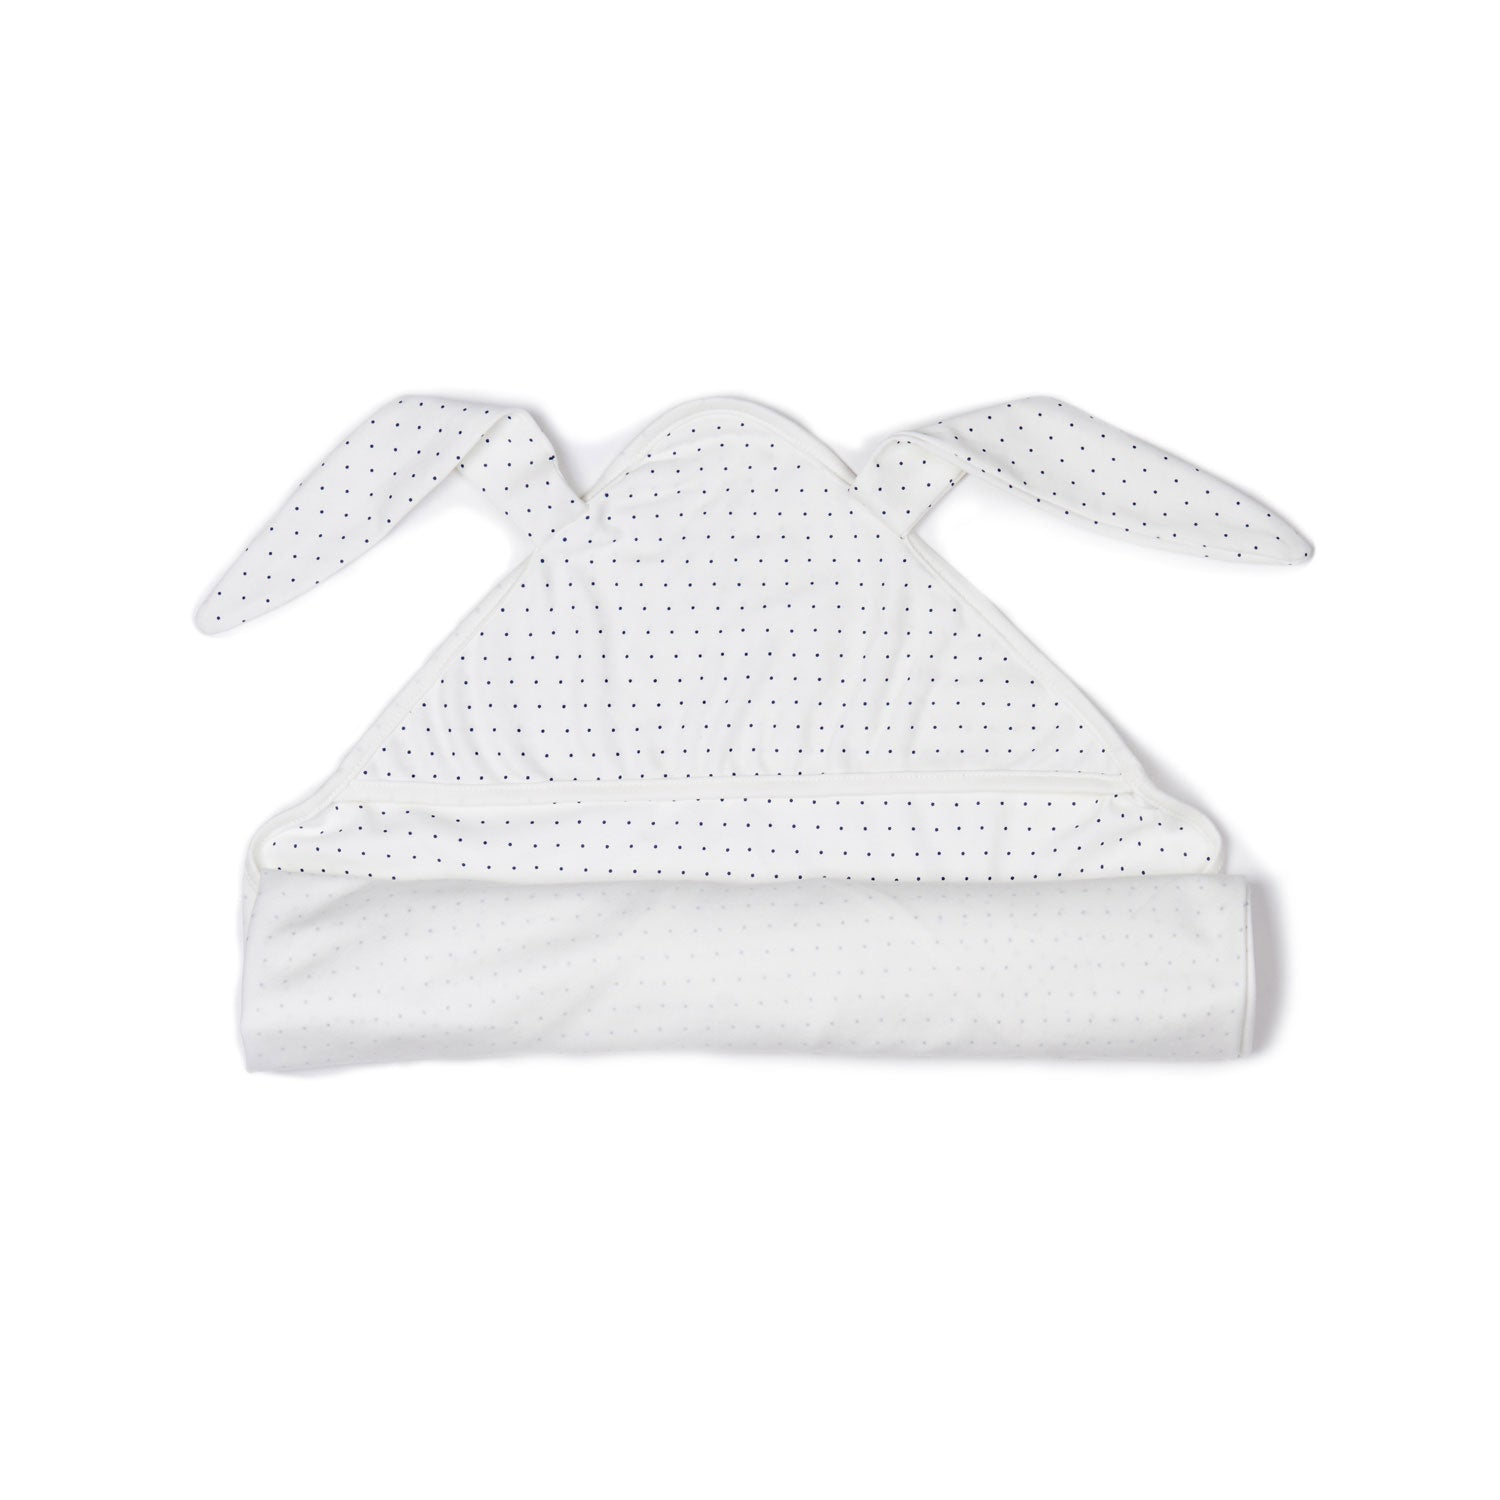 Oeuf White/Indigo Dots Bunny Swaddle - Ladida